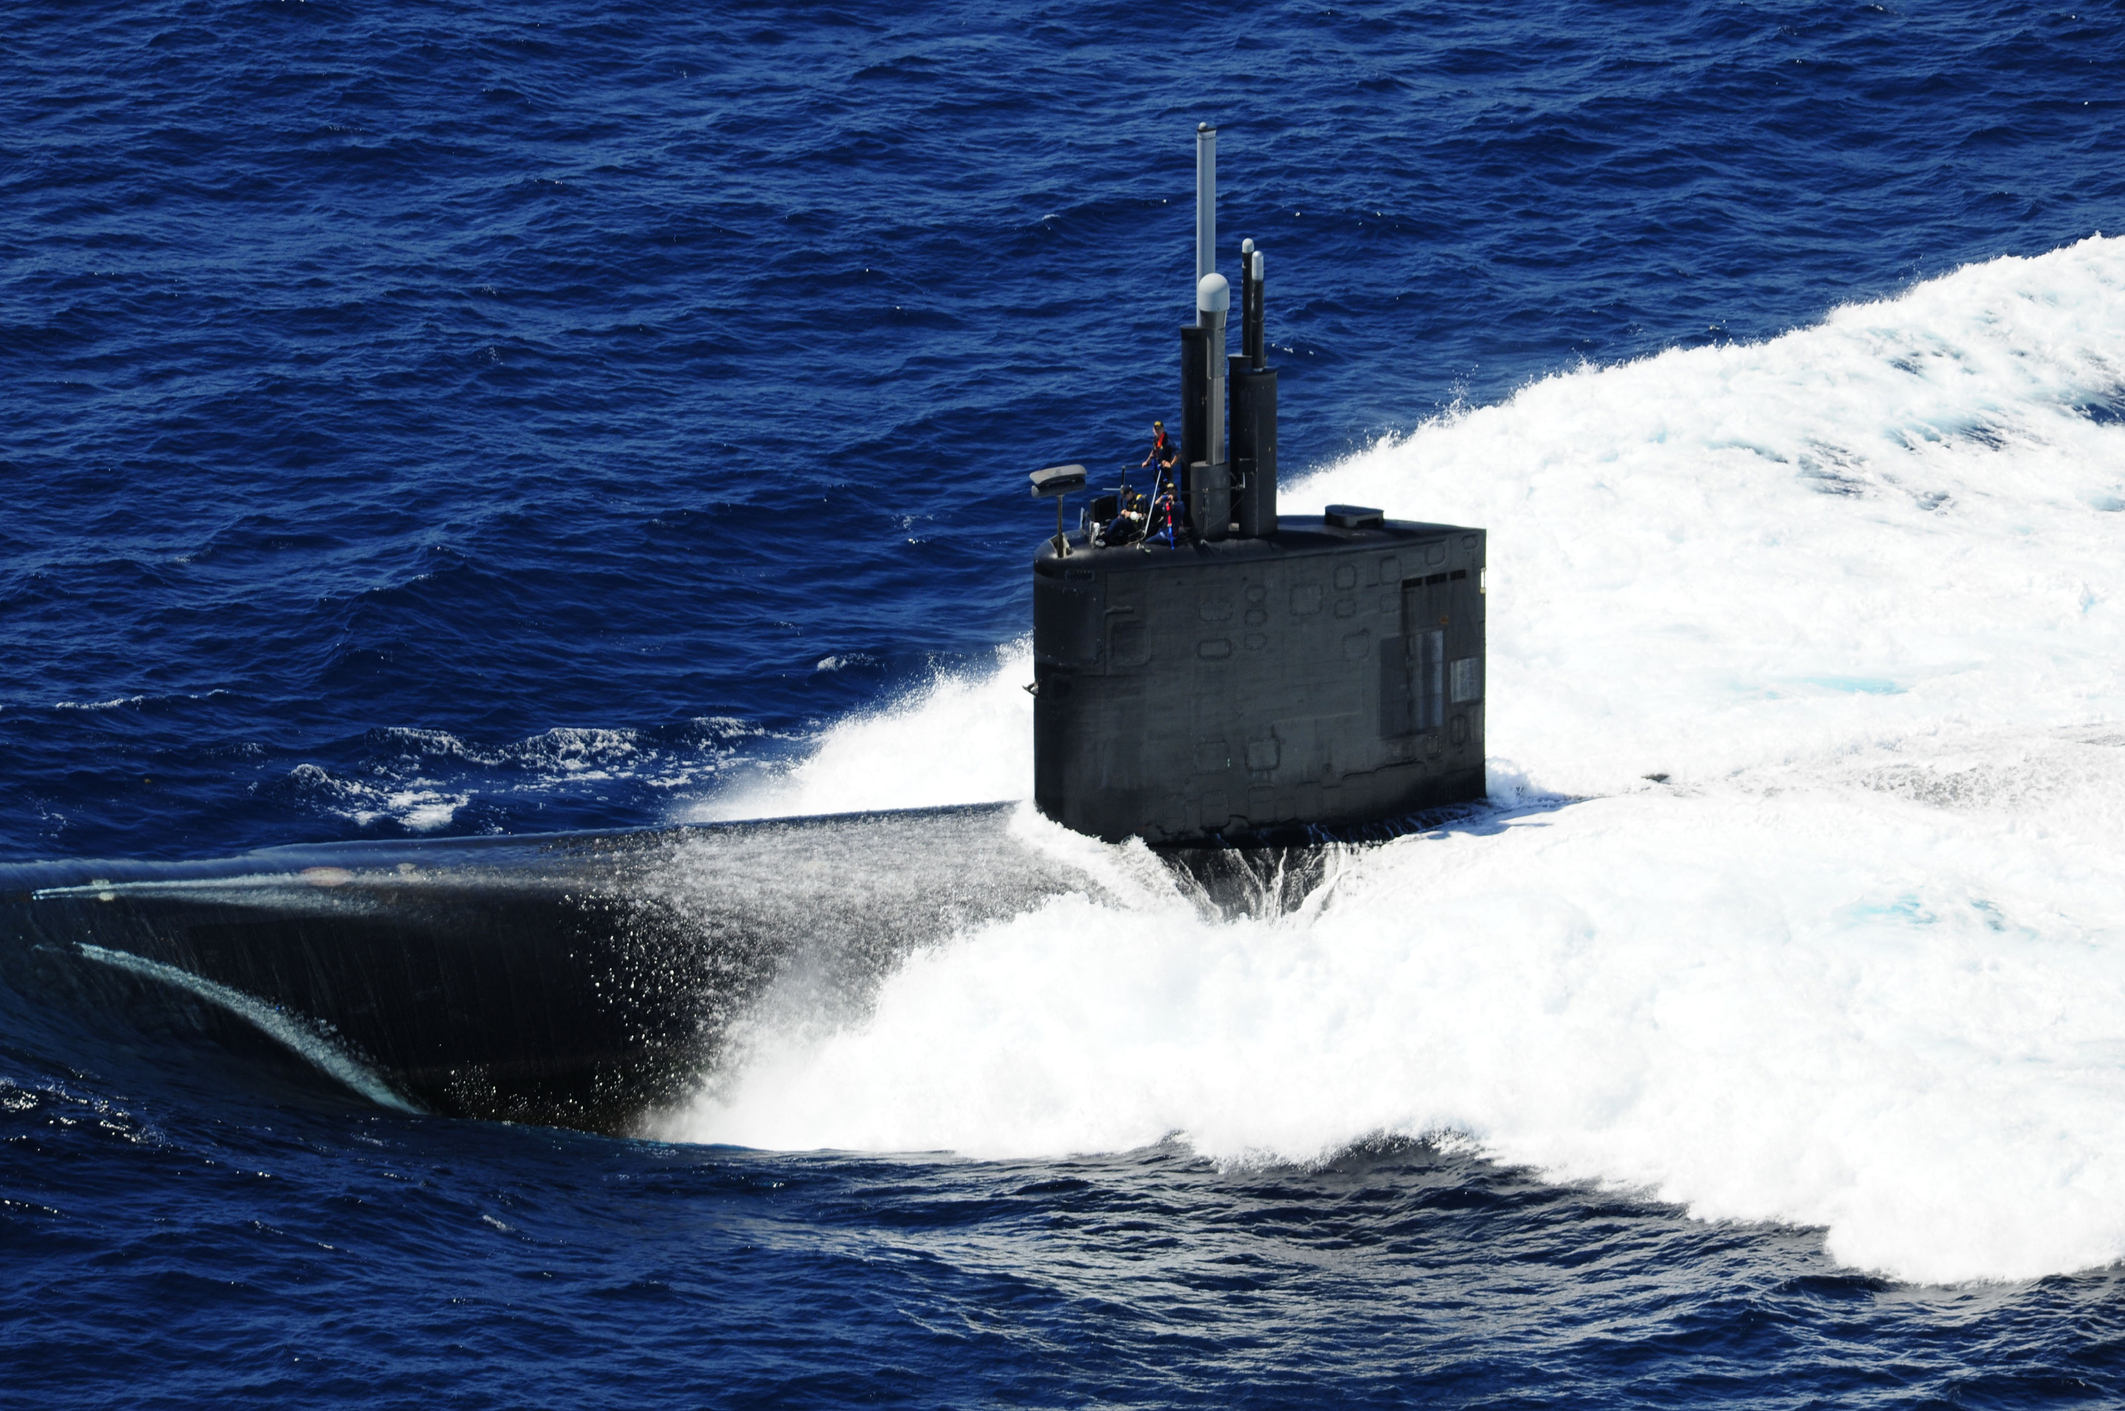 Atlantic Ocean. The fast-attack submarine USS Alexandria (SSN 757) surfaces for a formation sailing event while participating in the War of 1812 fleet exercise.